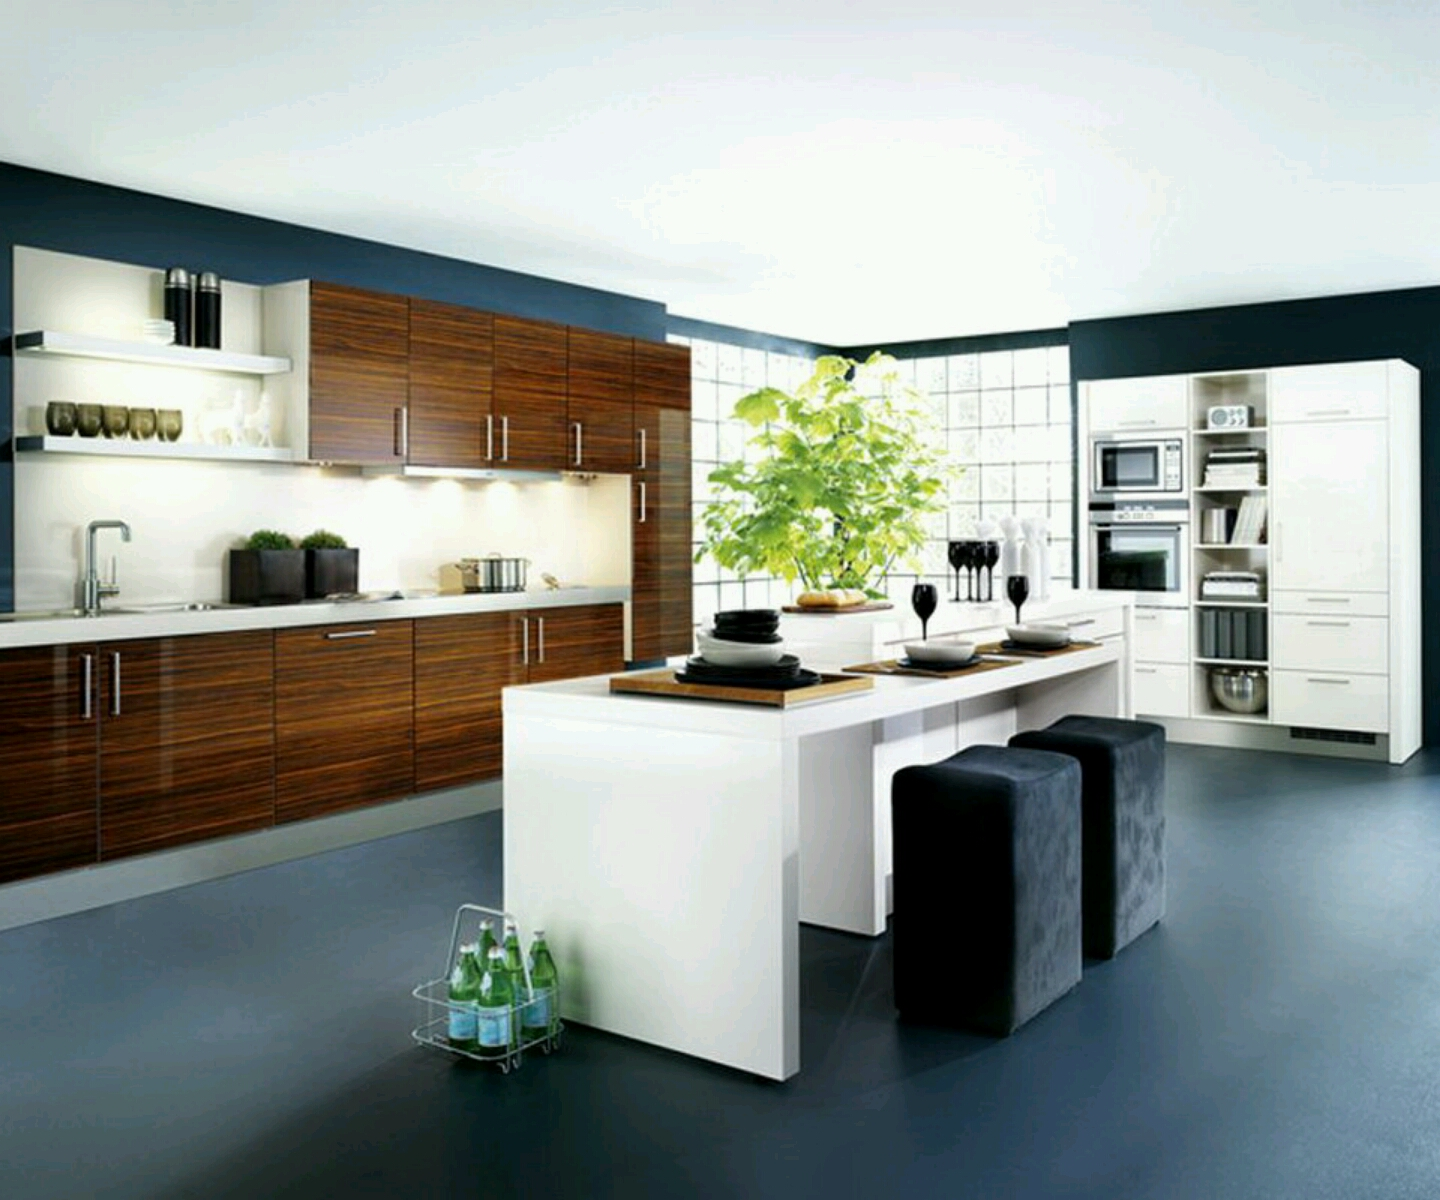 New home designs latest kitchen cabinets designs modern for Home kitchen ideas